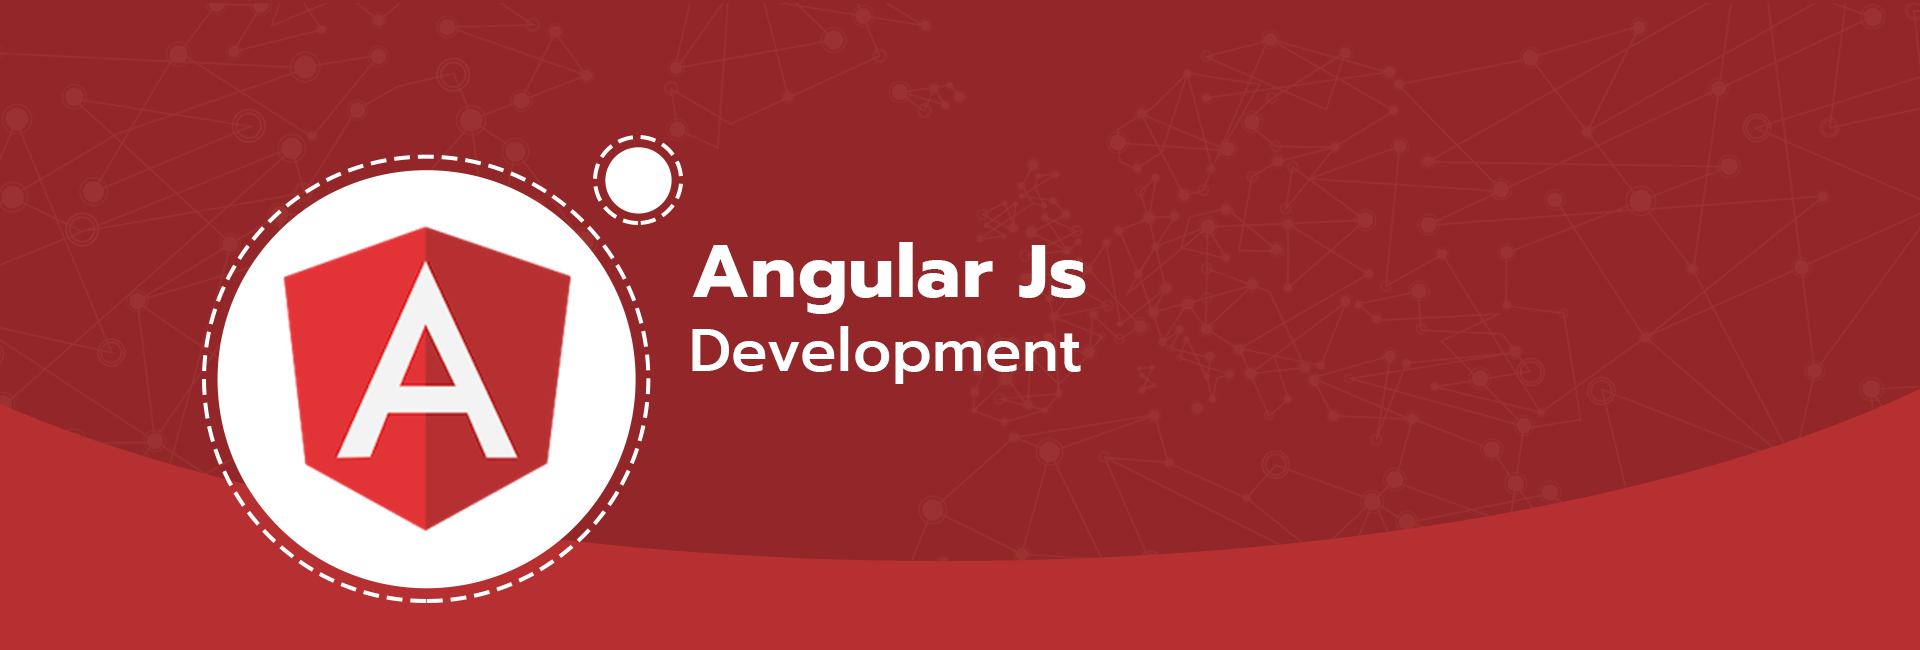 Important reasons for developers to adopt Angular JS development